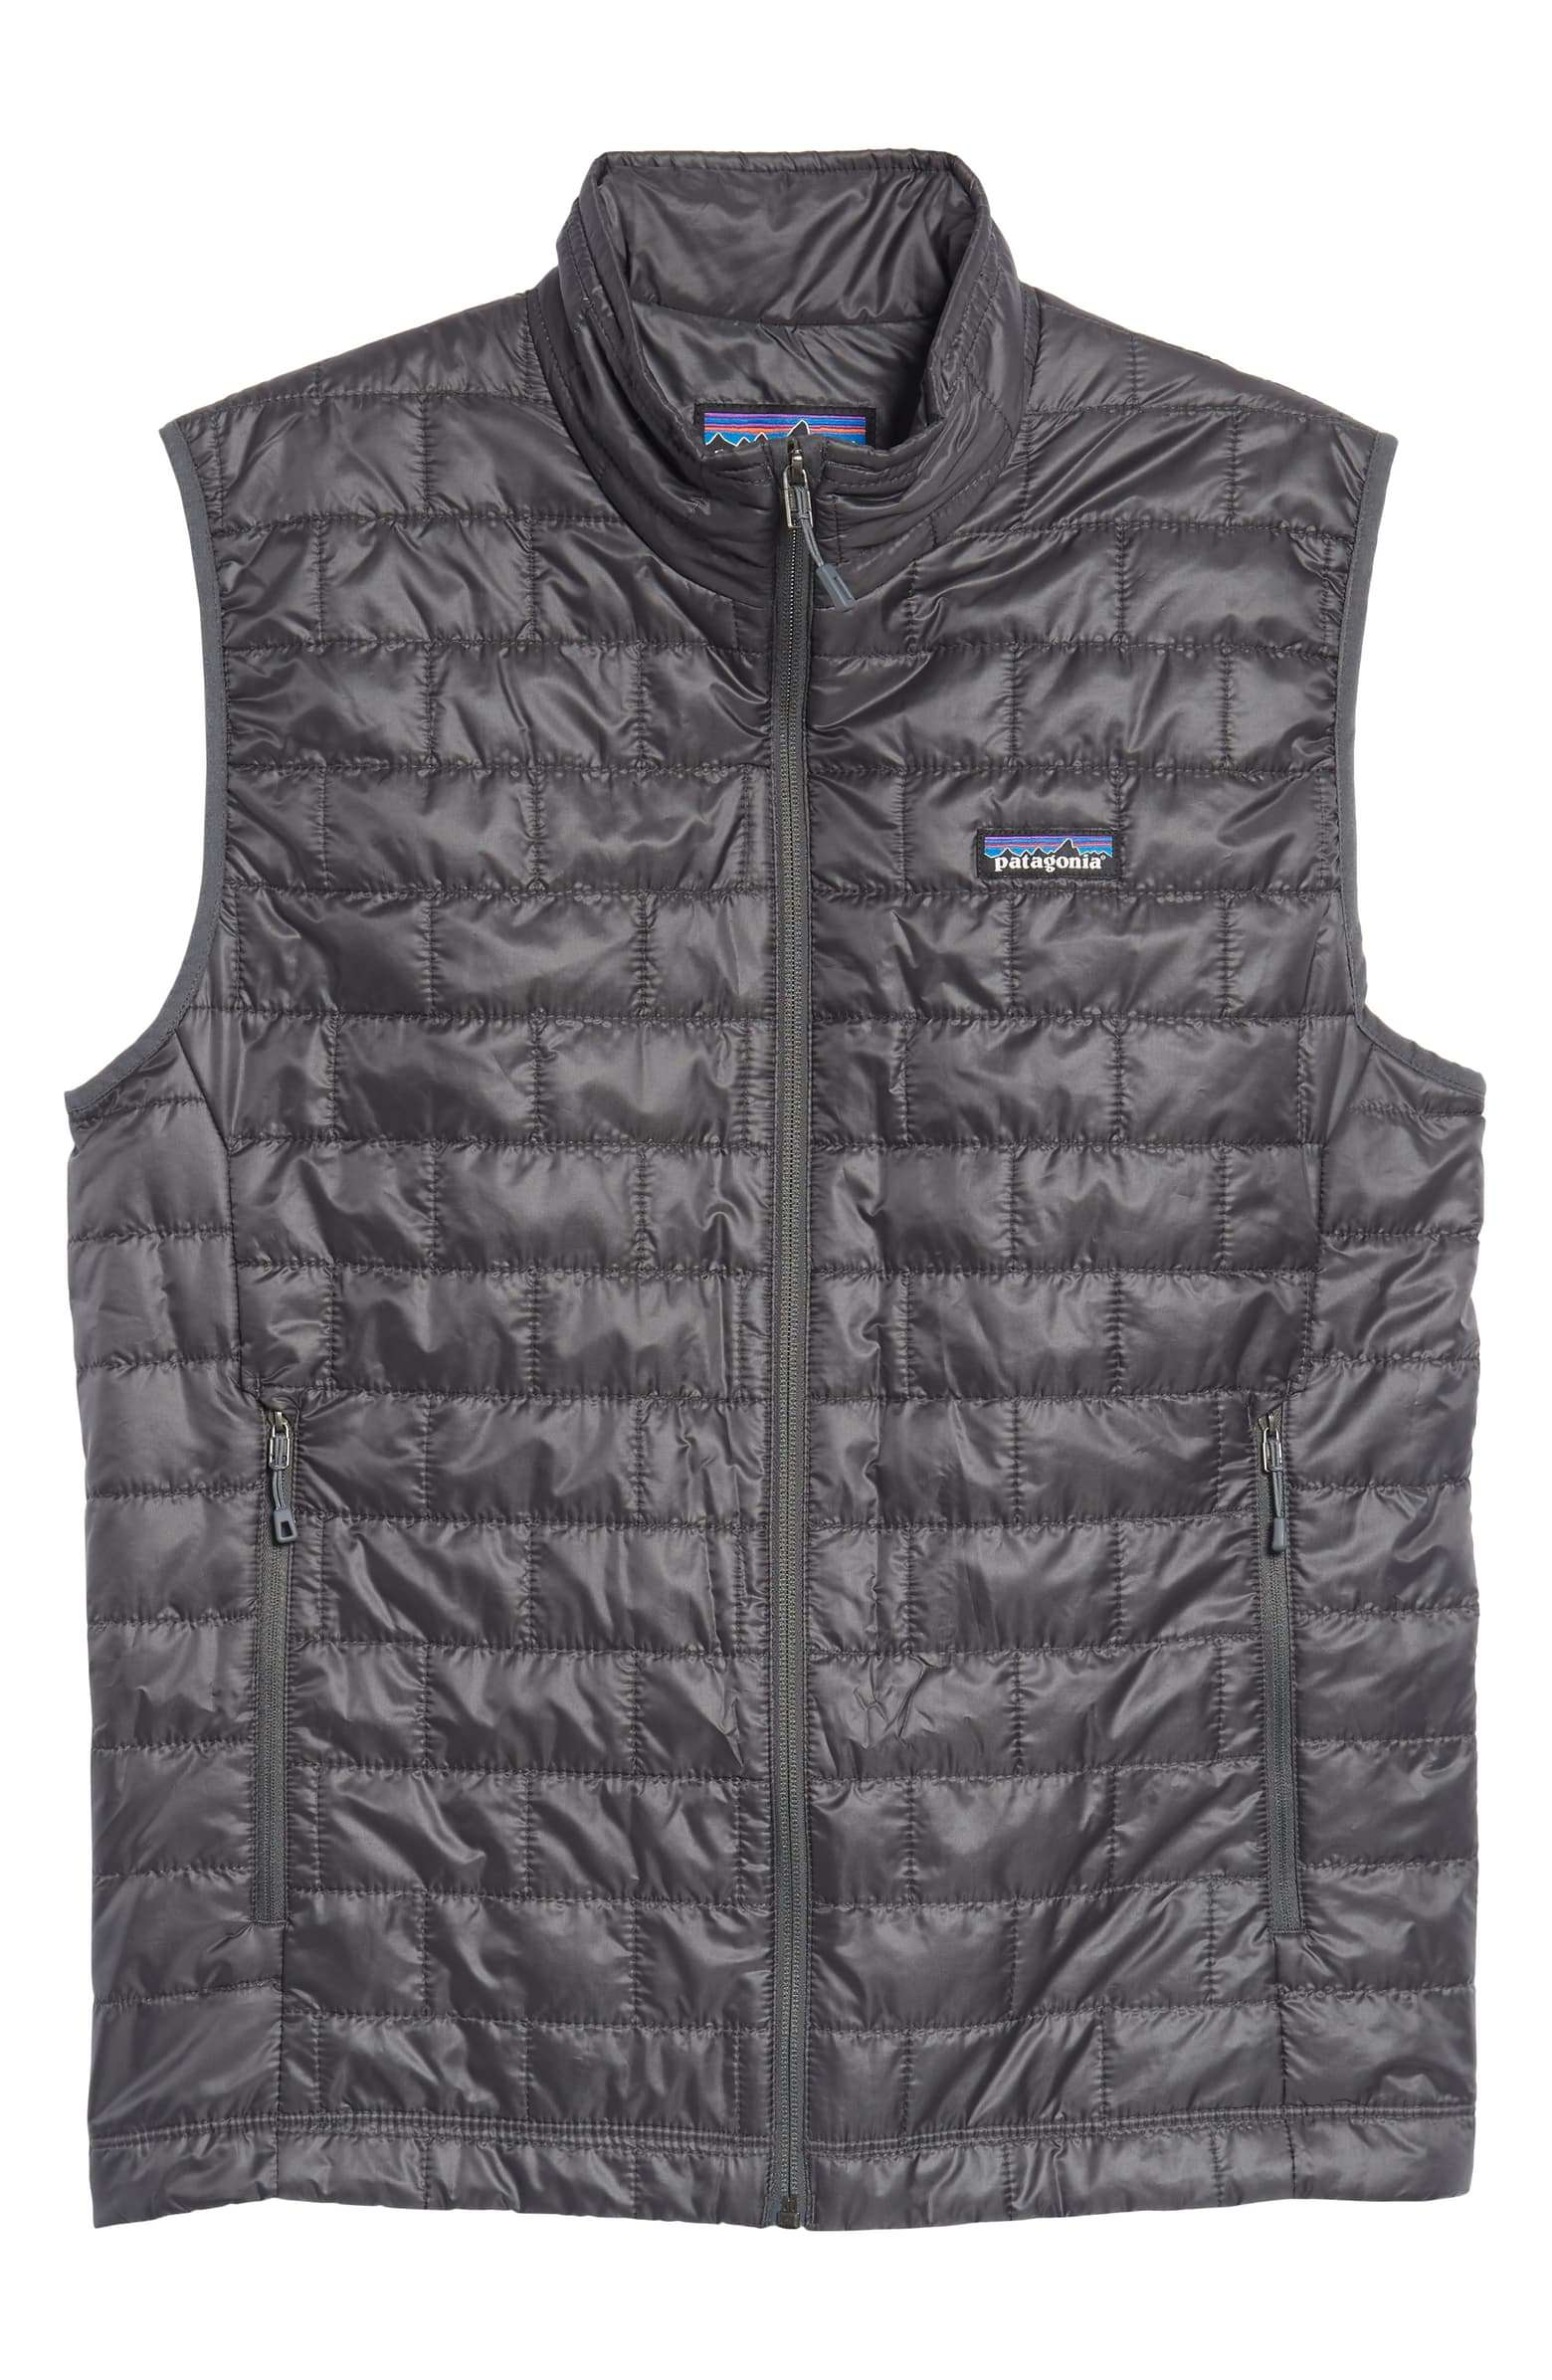 https://mycolorfulwanderings.com/wp-content/uploads/2020/08/Patagonia-Vest.jpg